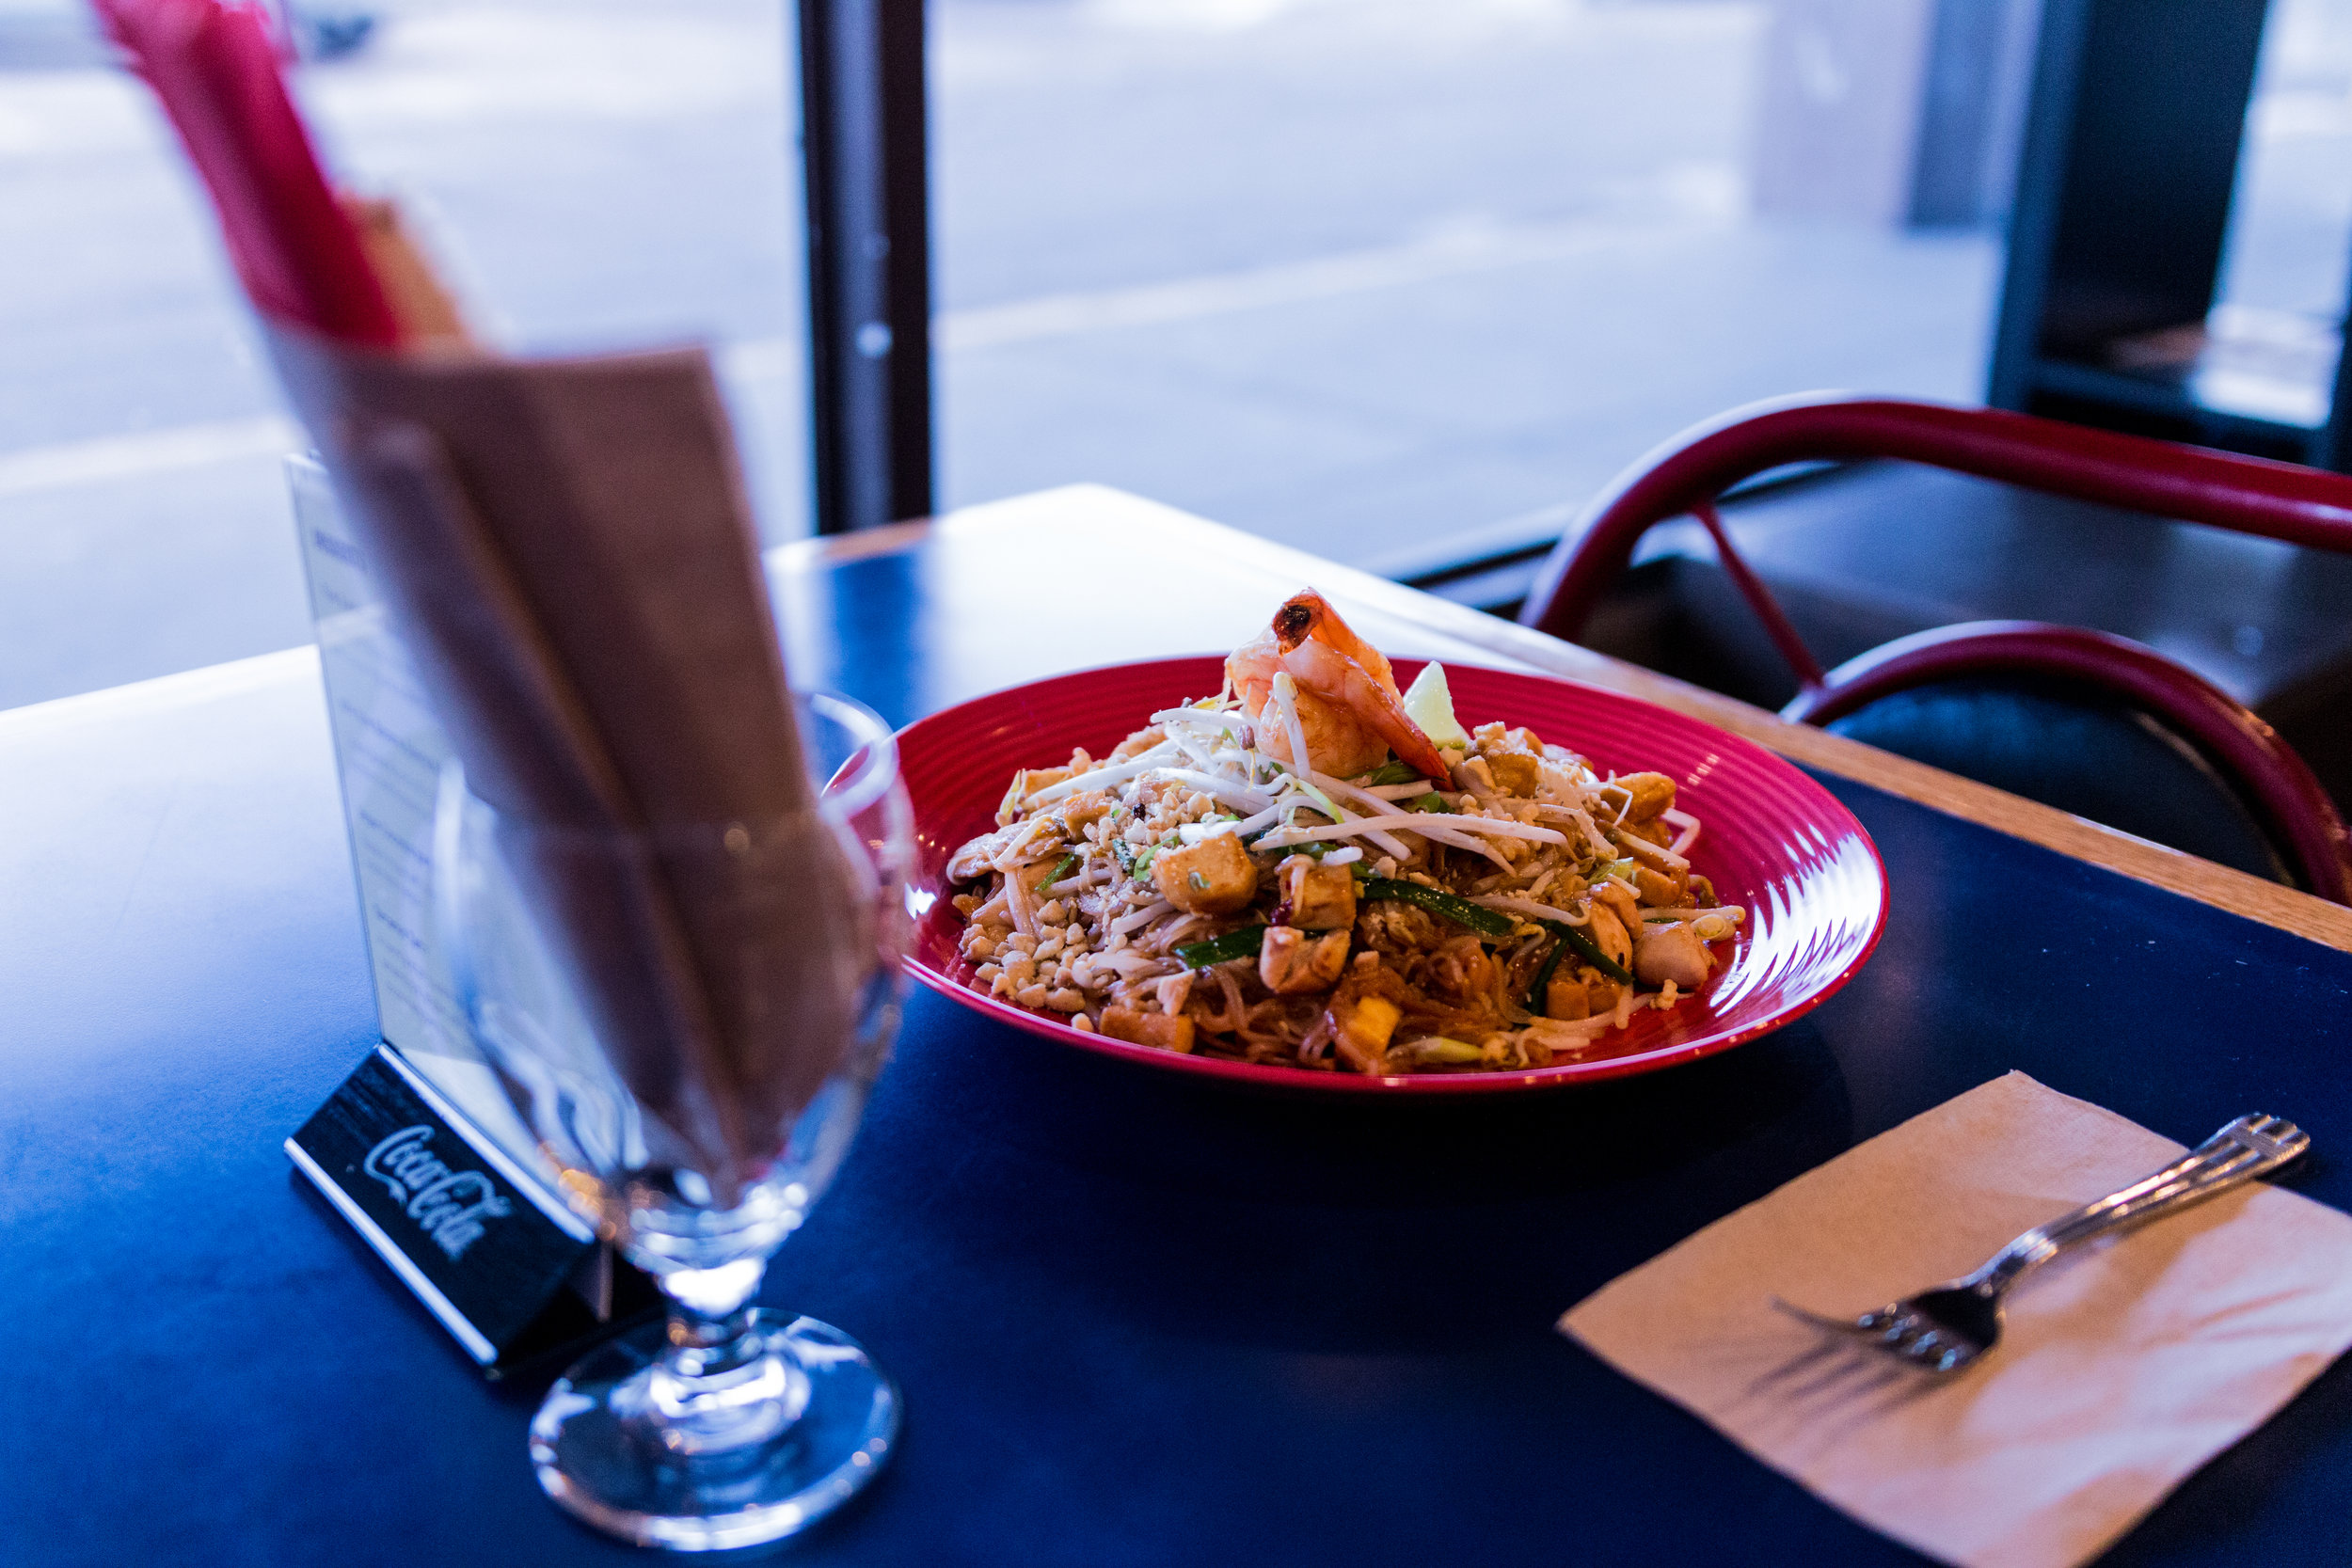 Pad thai feast for the eyes.